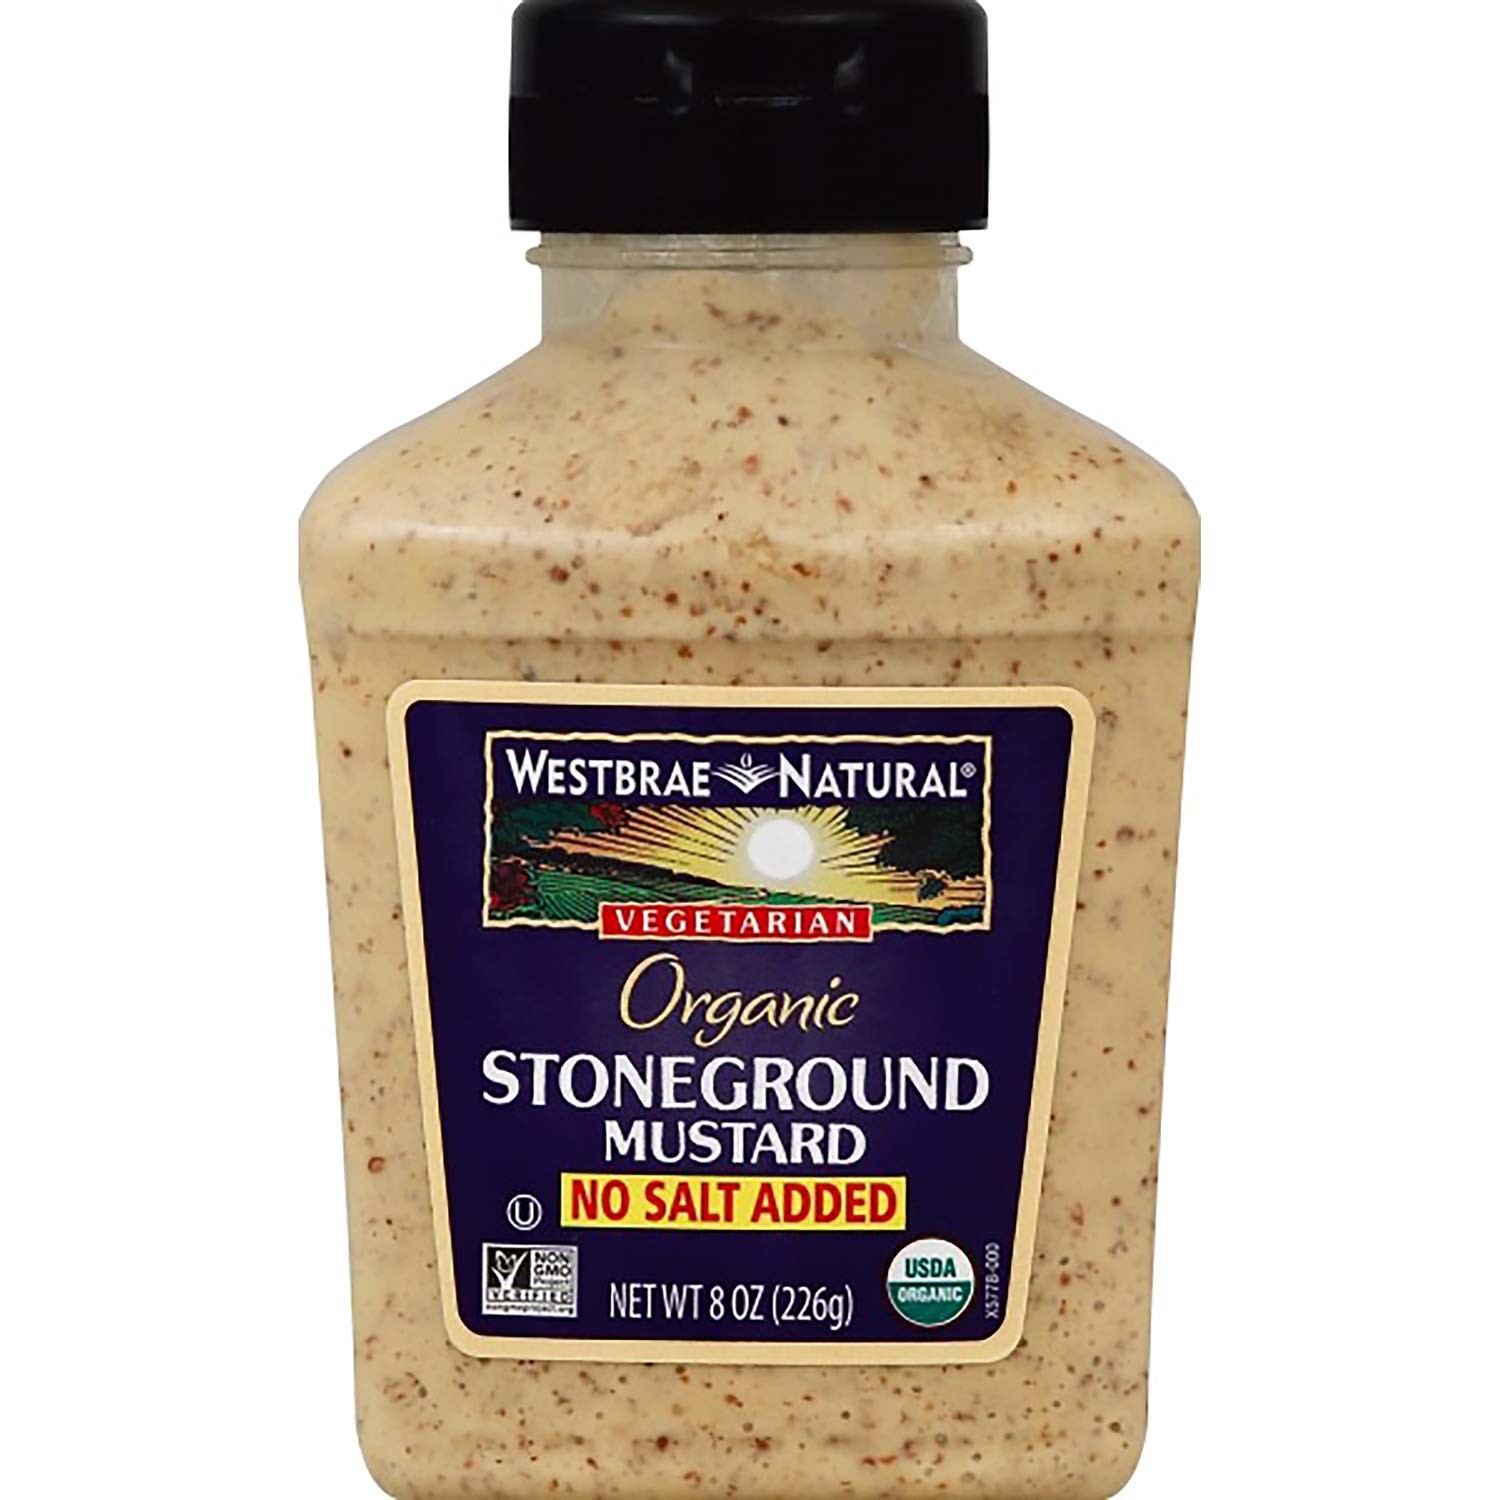 Westbrae Natural Stoneground Mustard, No Salt Added, 8 Ounce Bottle (Pack of 12)